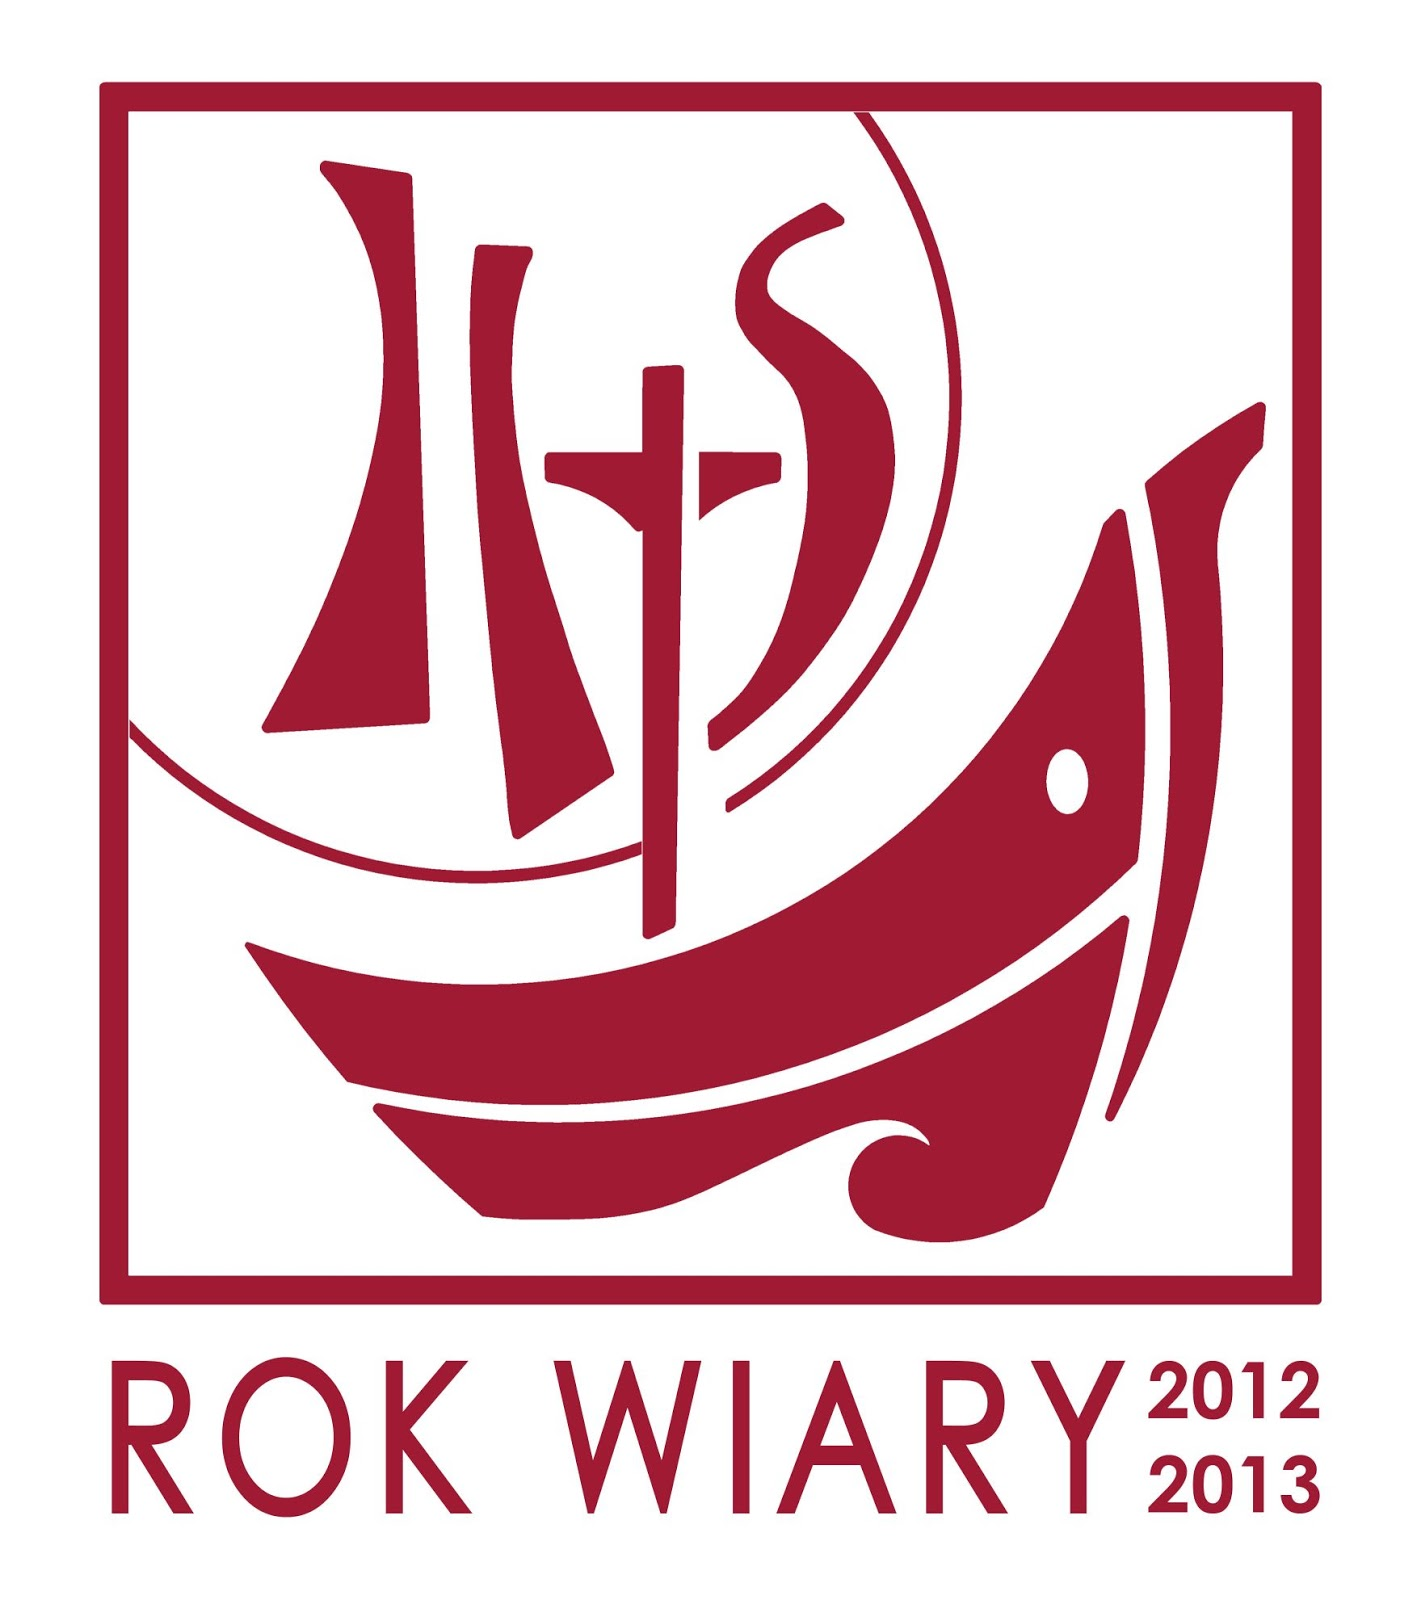 Rok Wiary